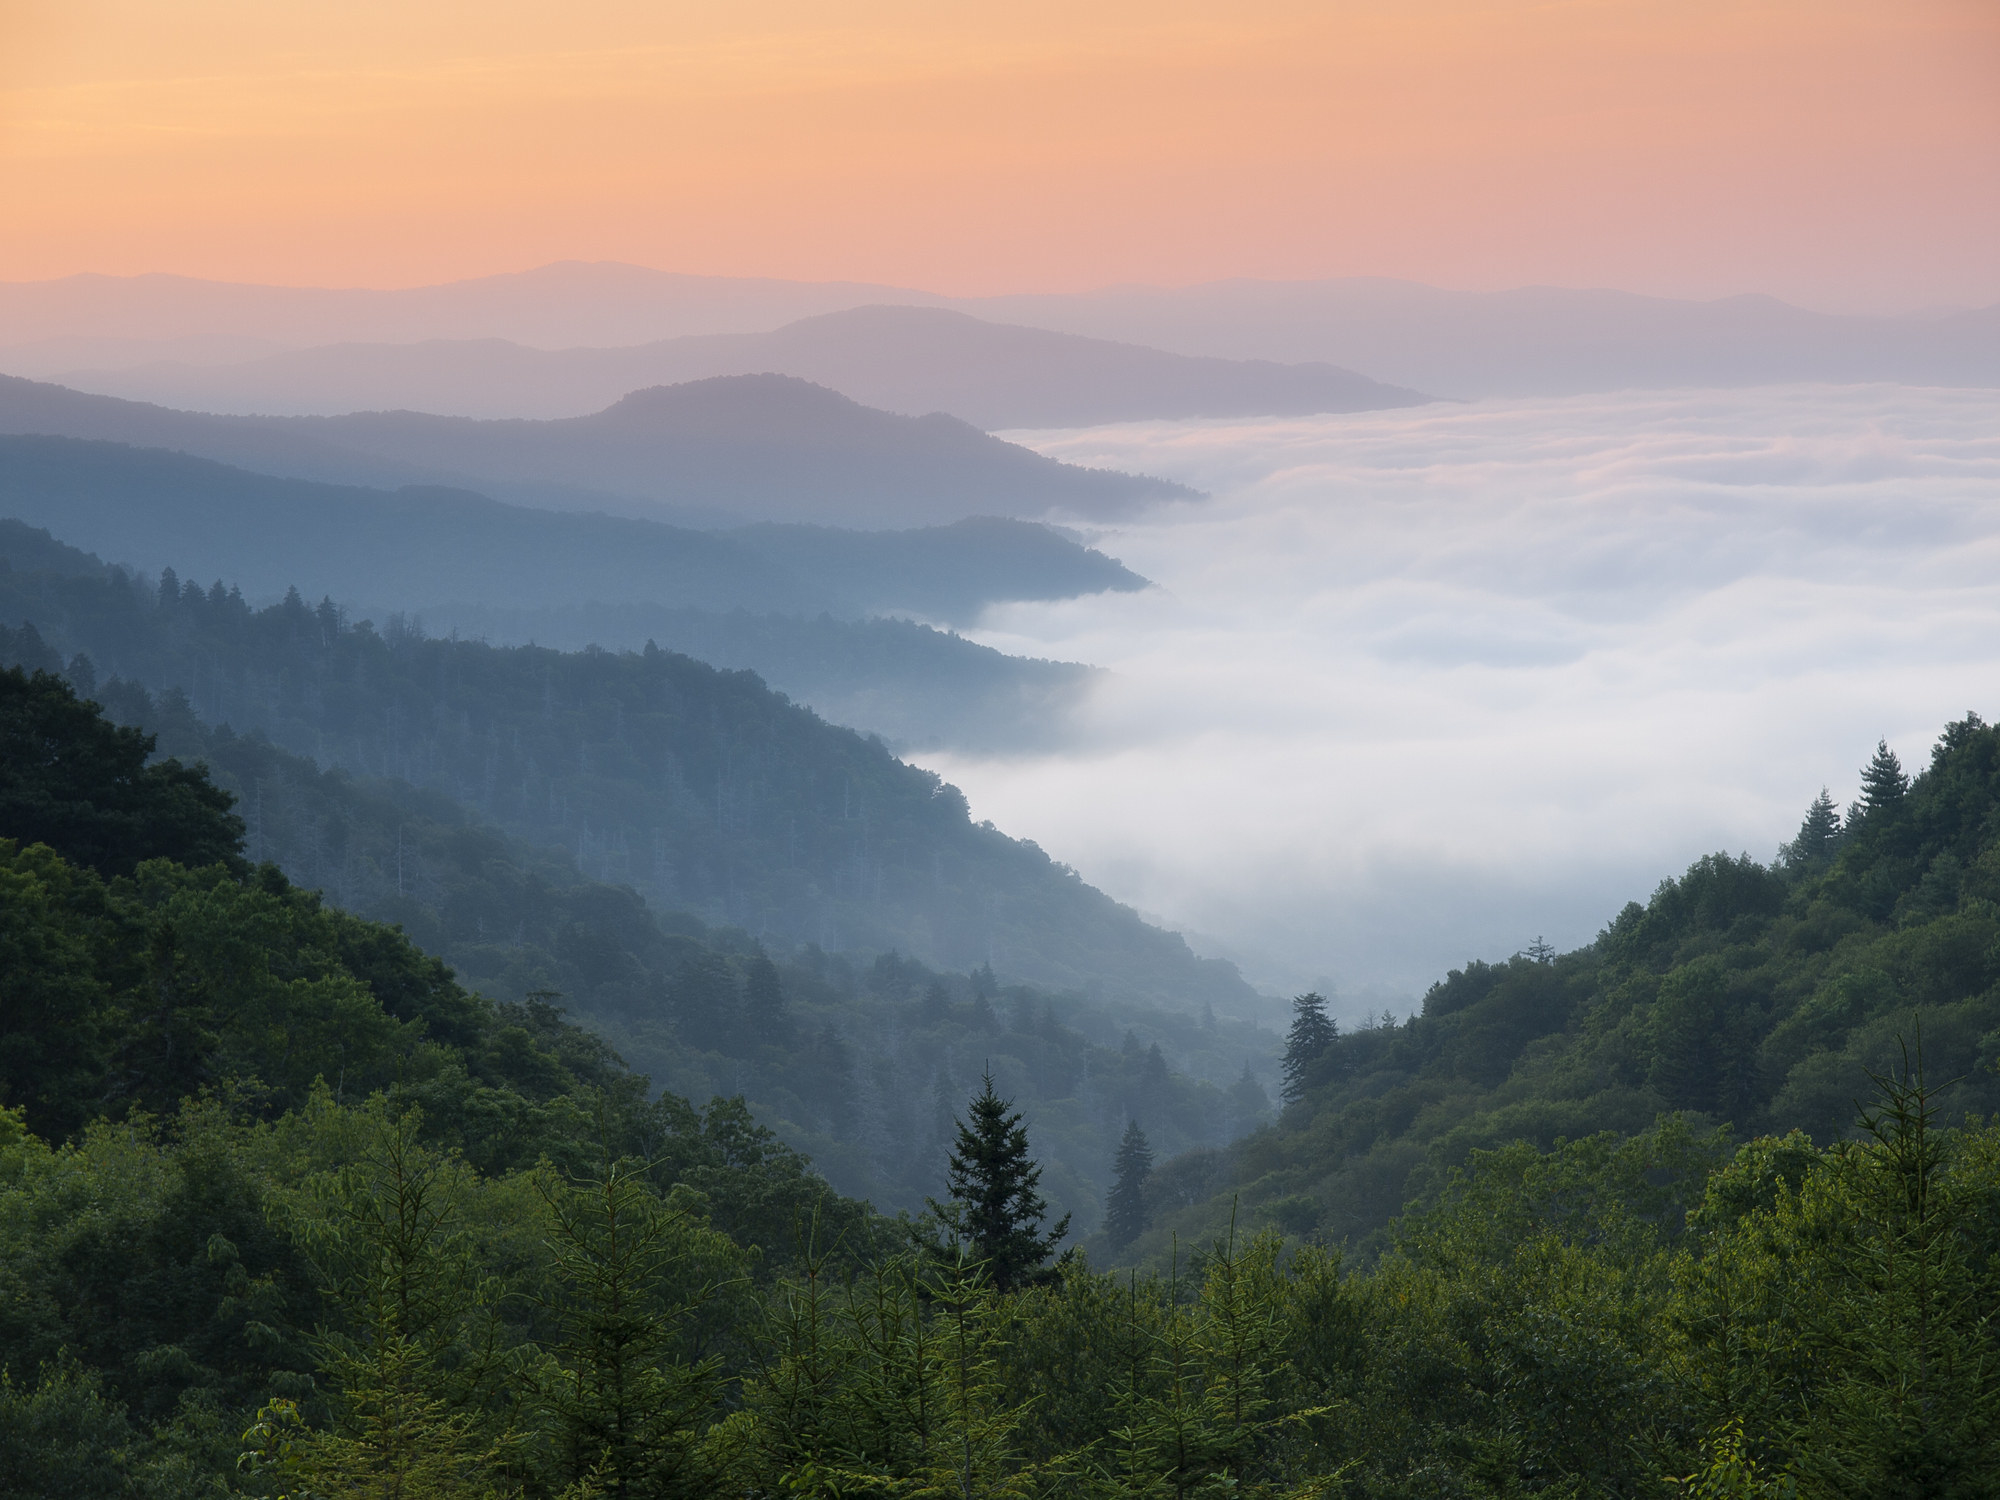 Green trees in the foreground and the sloping hills of Blue Ridge Mountains in the background, all covered by a hazy dawn mist